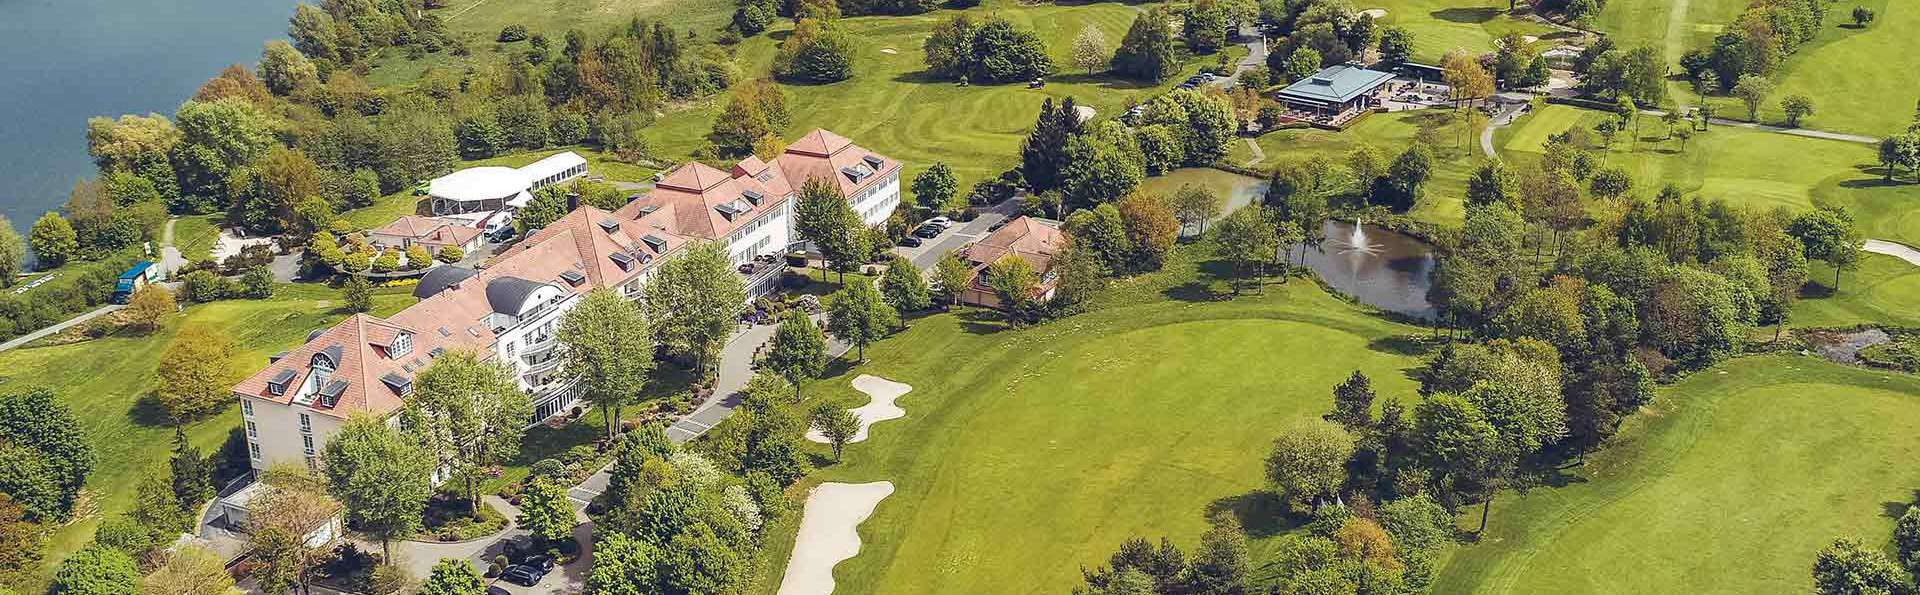 Lindner Hotel & Sporting Club Wiesensee - EDIT_AERIAL_02.jpg